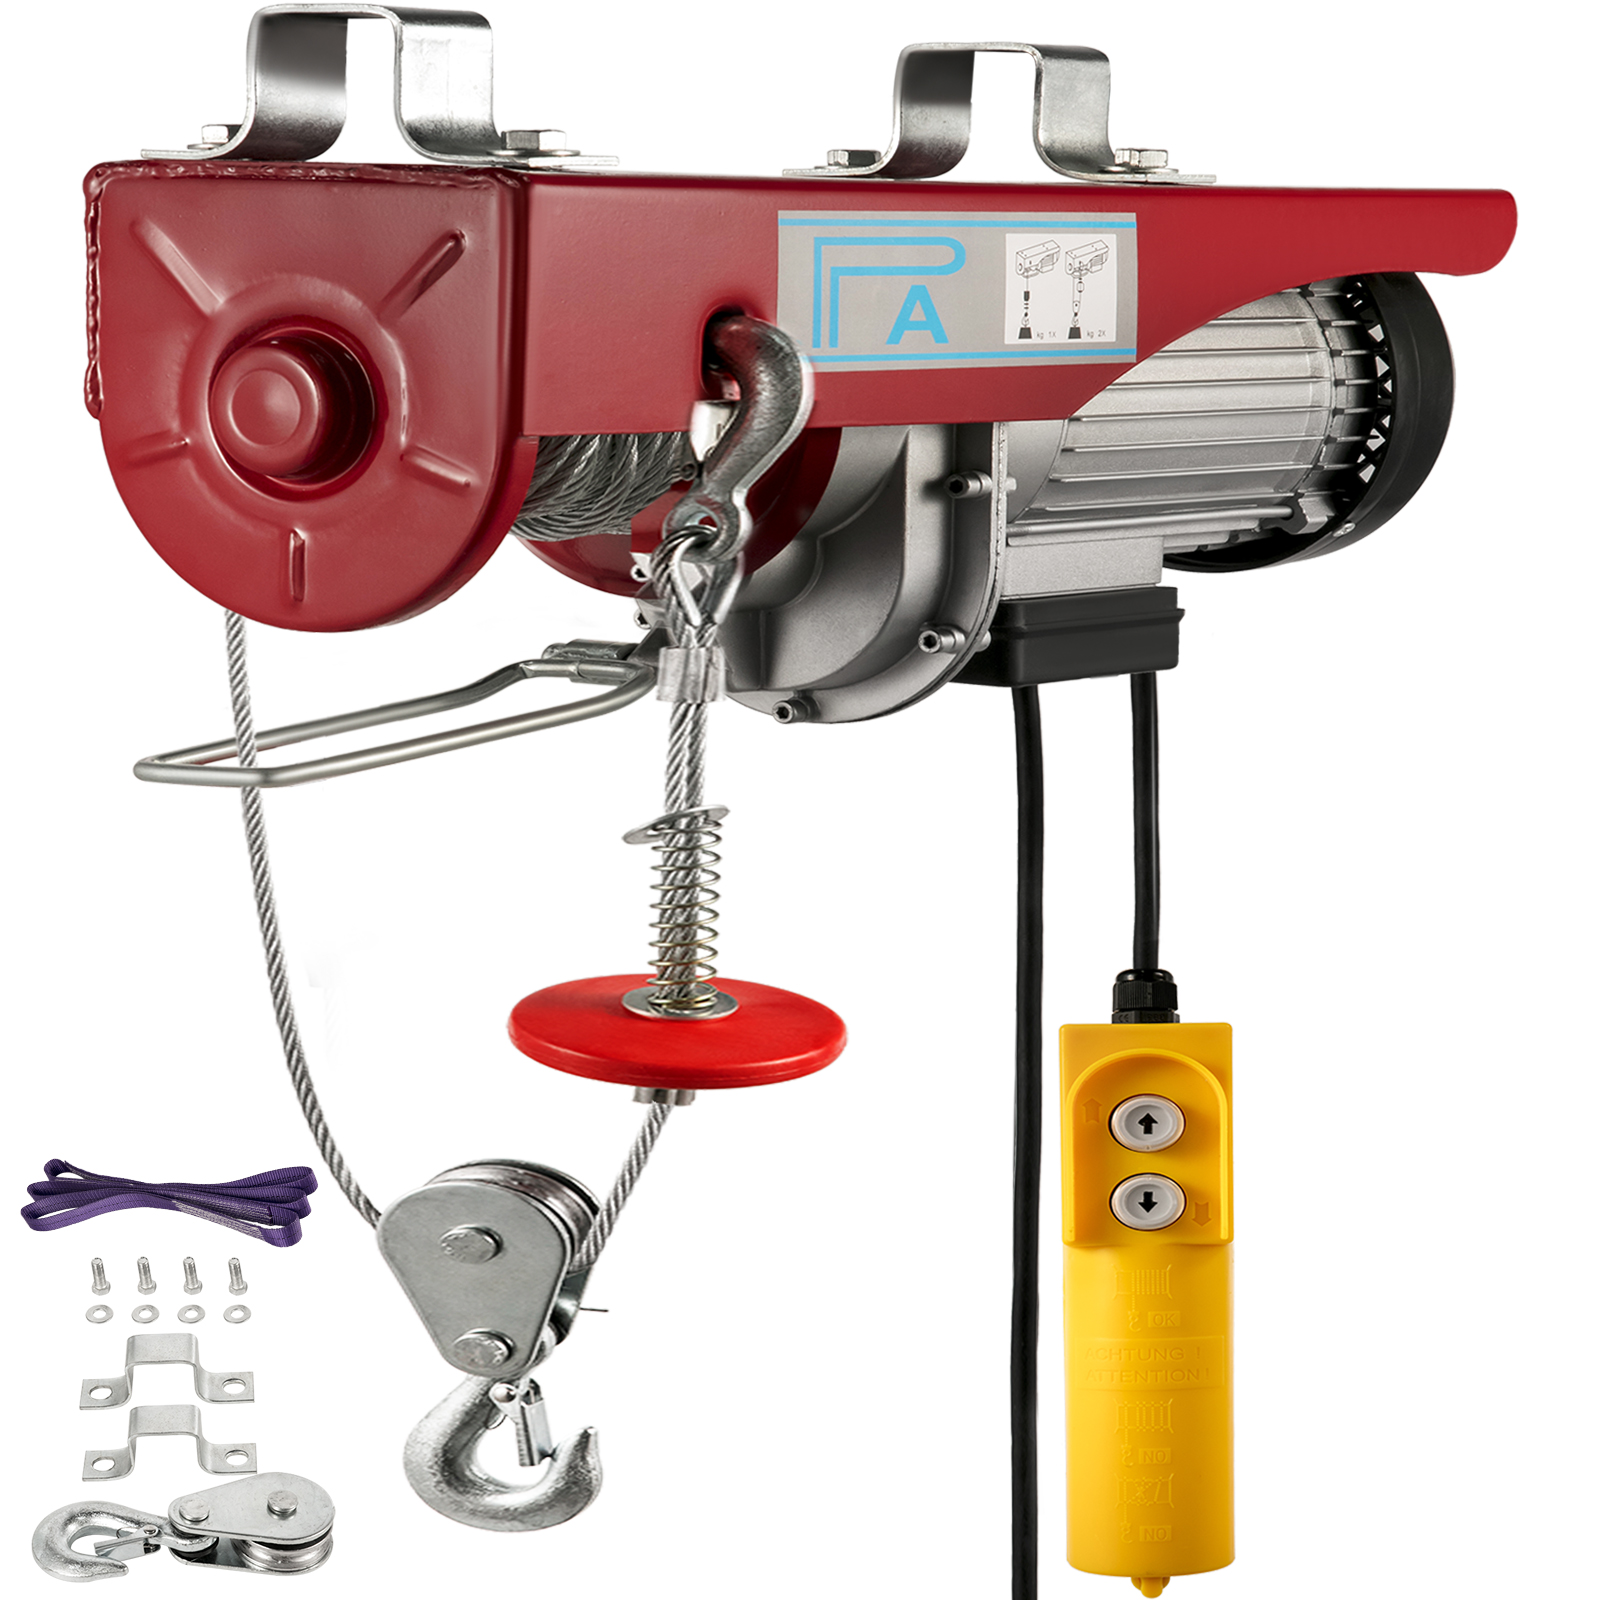 VEVOR 440 /880/1320/1760lbs 110V/220V Electric Hoist Crane New Portable Lift Overhead Garage Winch With Wired Remote Control